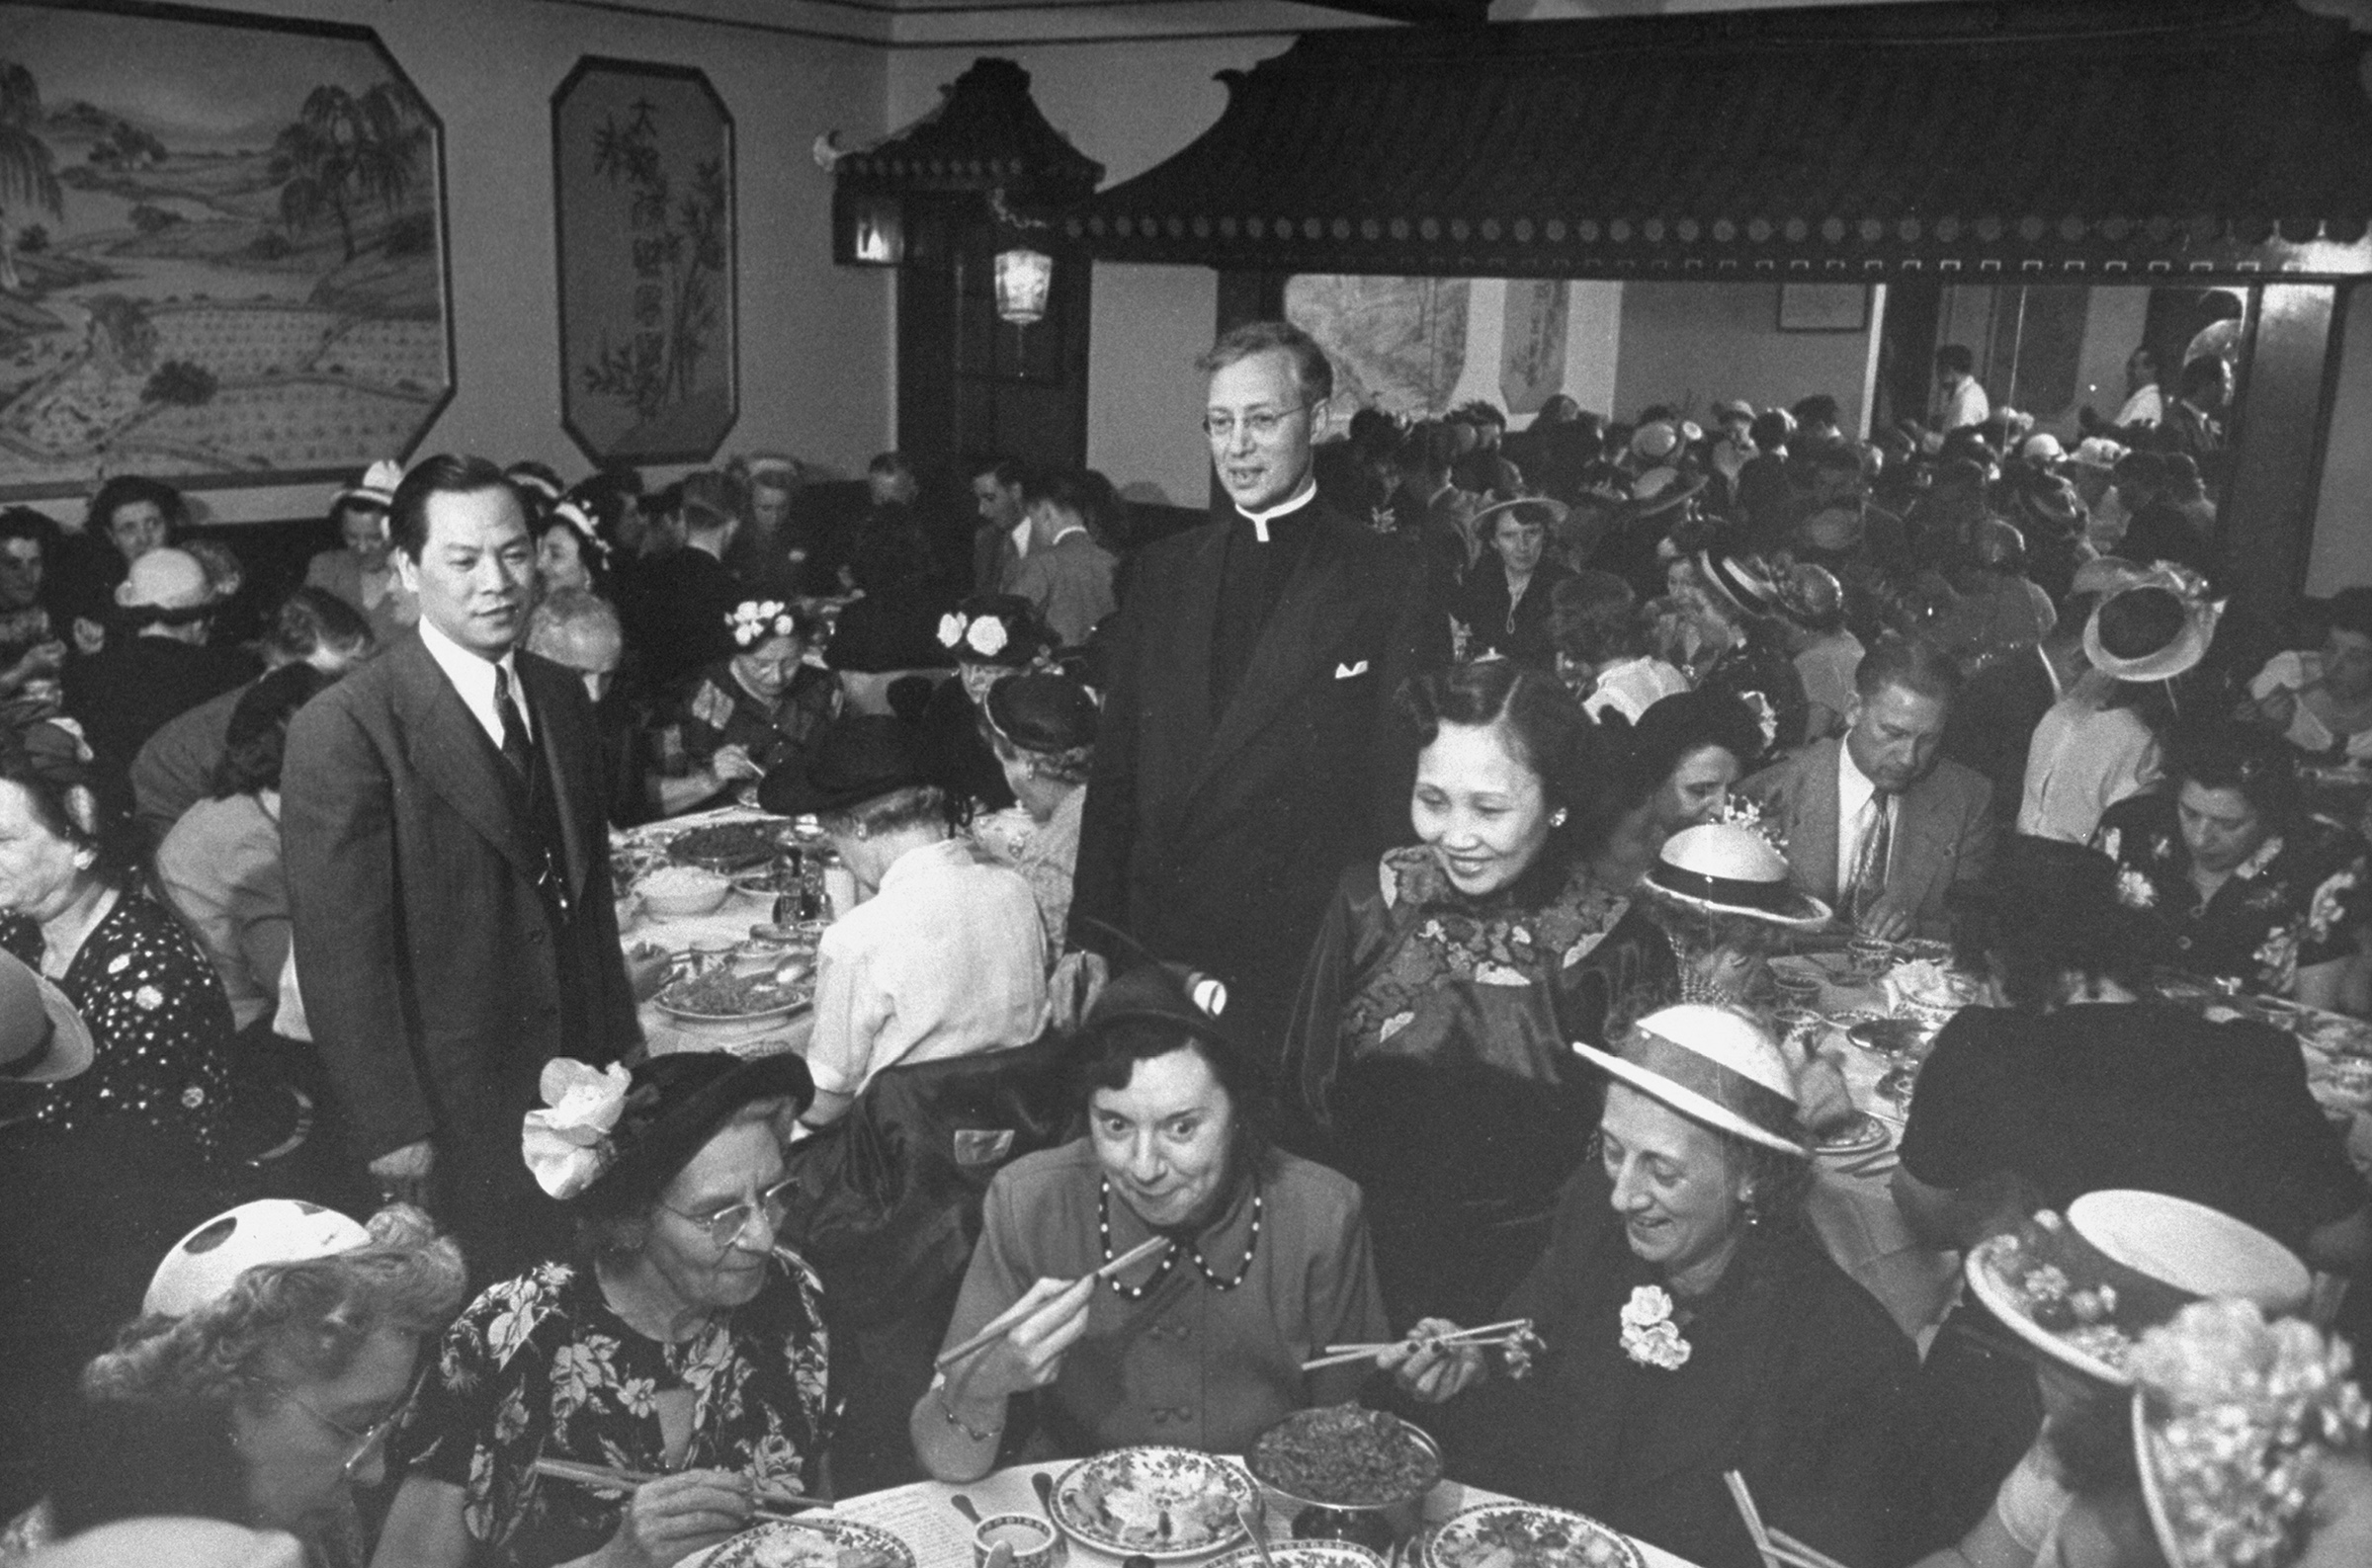 Chin Dut Toy (L) standing in his restaurant, watching tourists try his Chinese food in December 1950 in New York City.